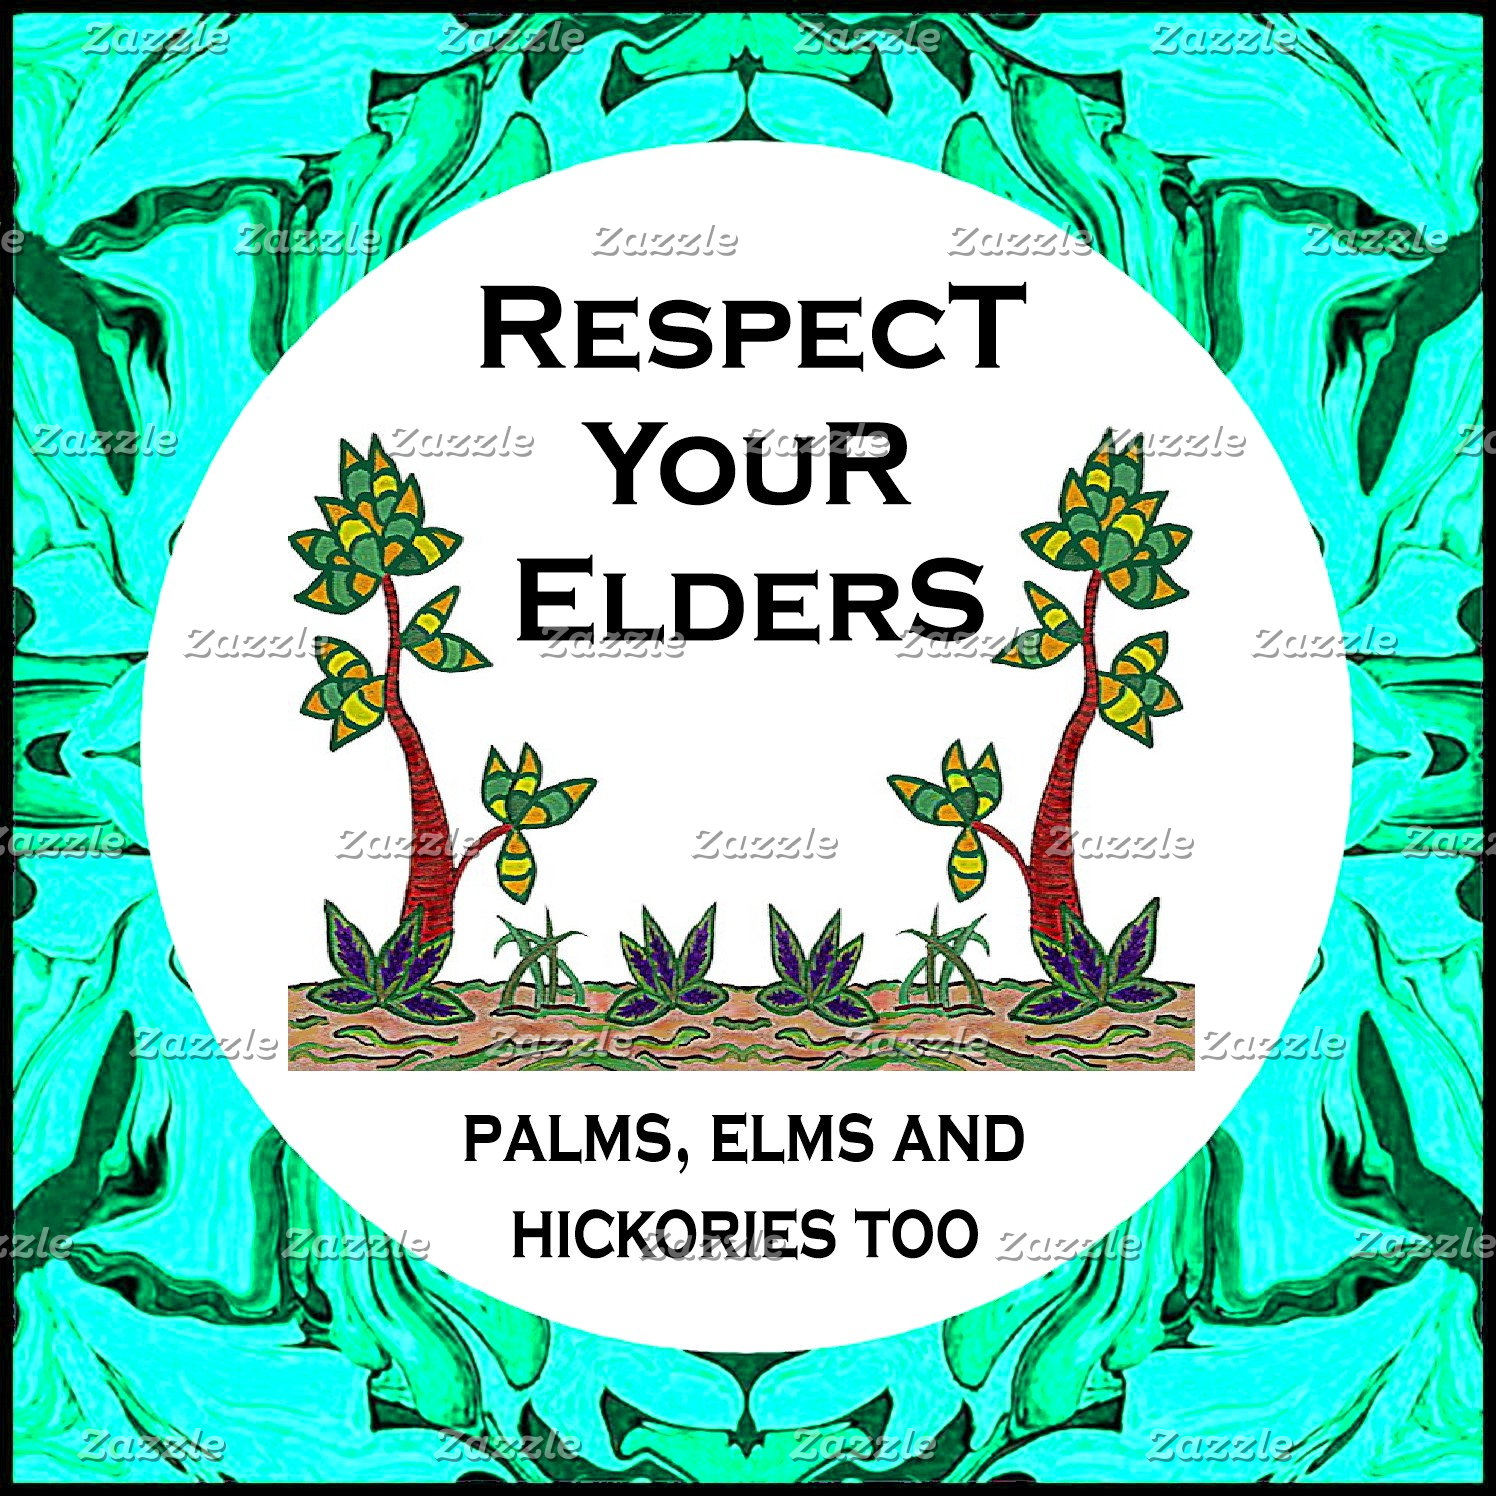 Respect your Elders